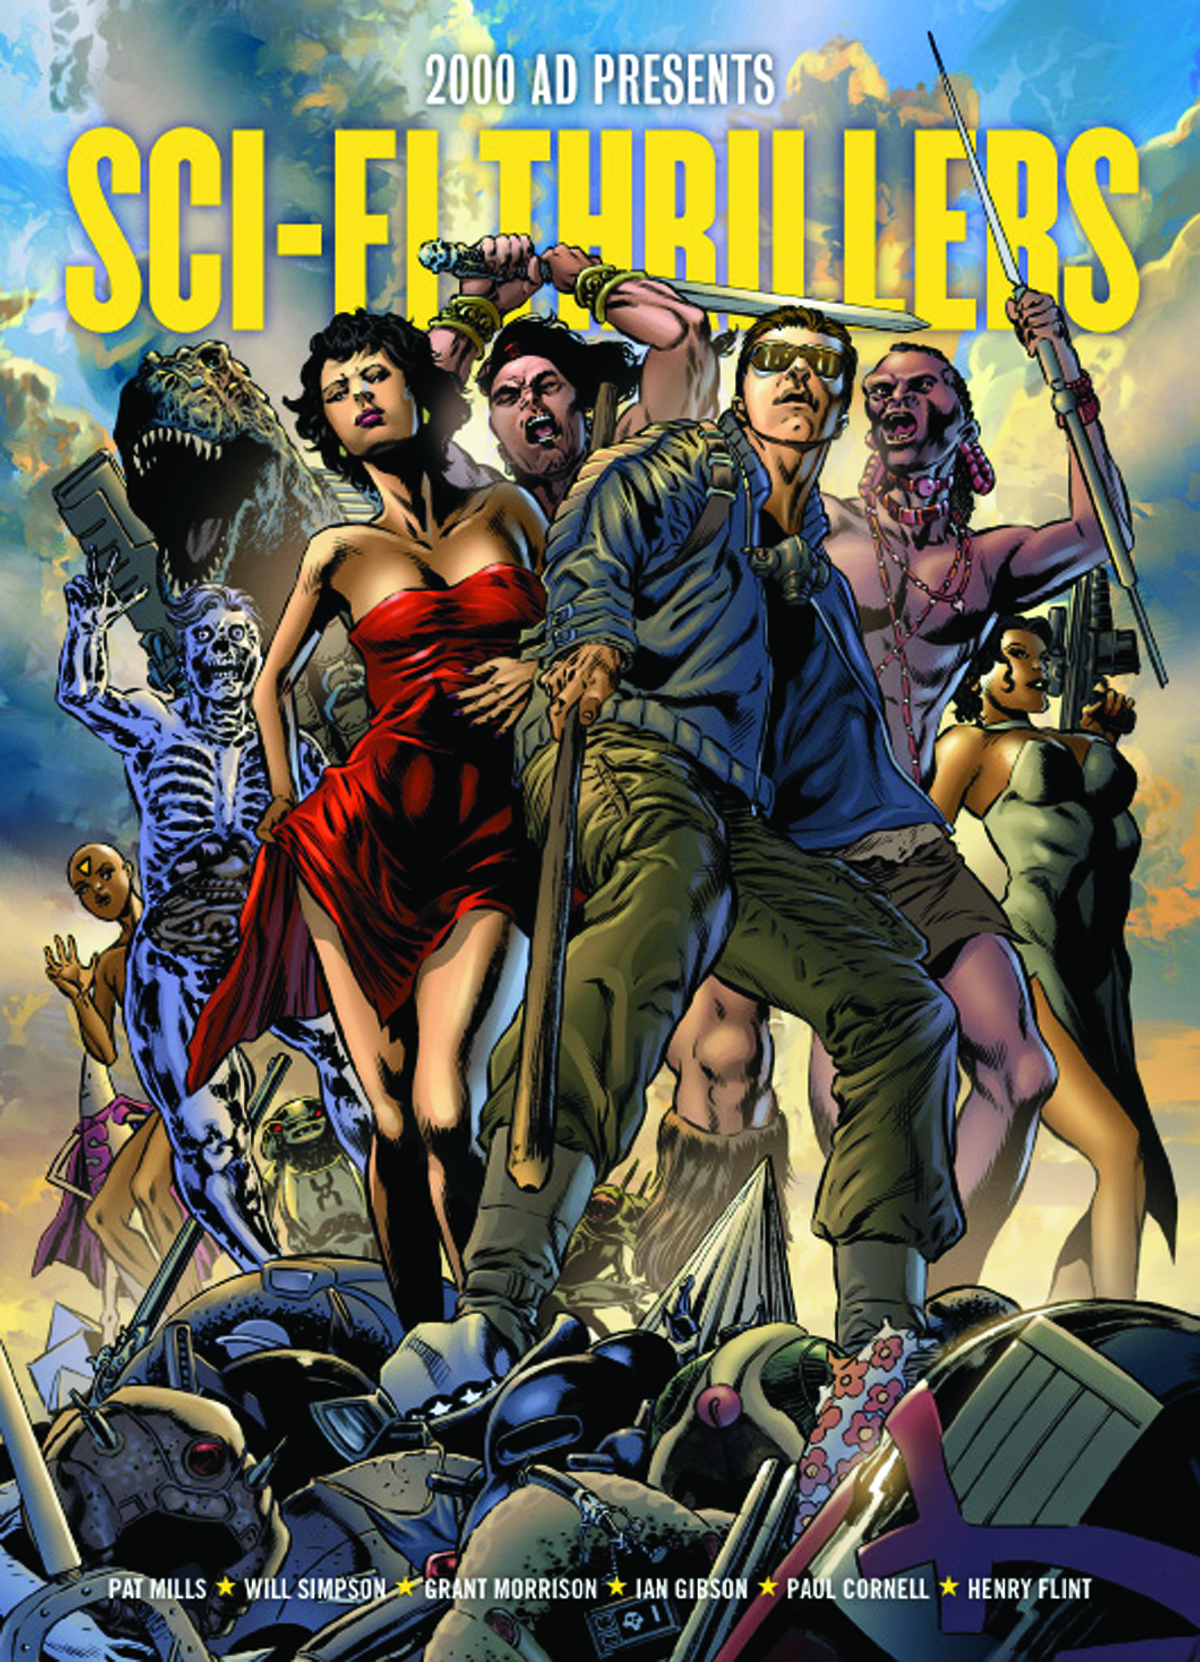 2000 AD PRES SCI-FI THRILLERS TP